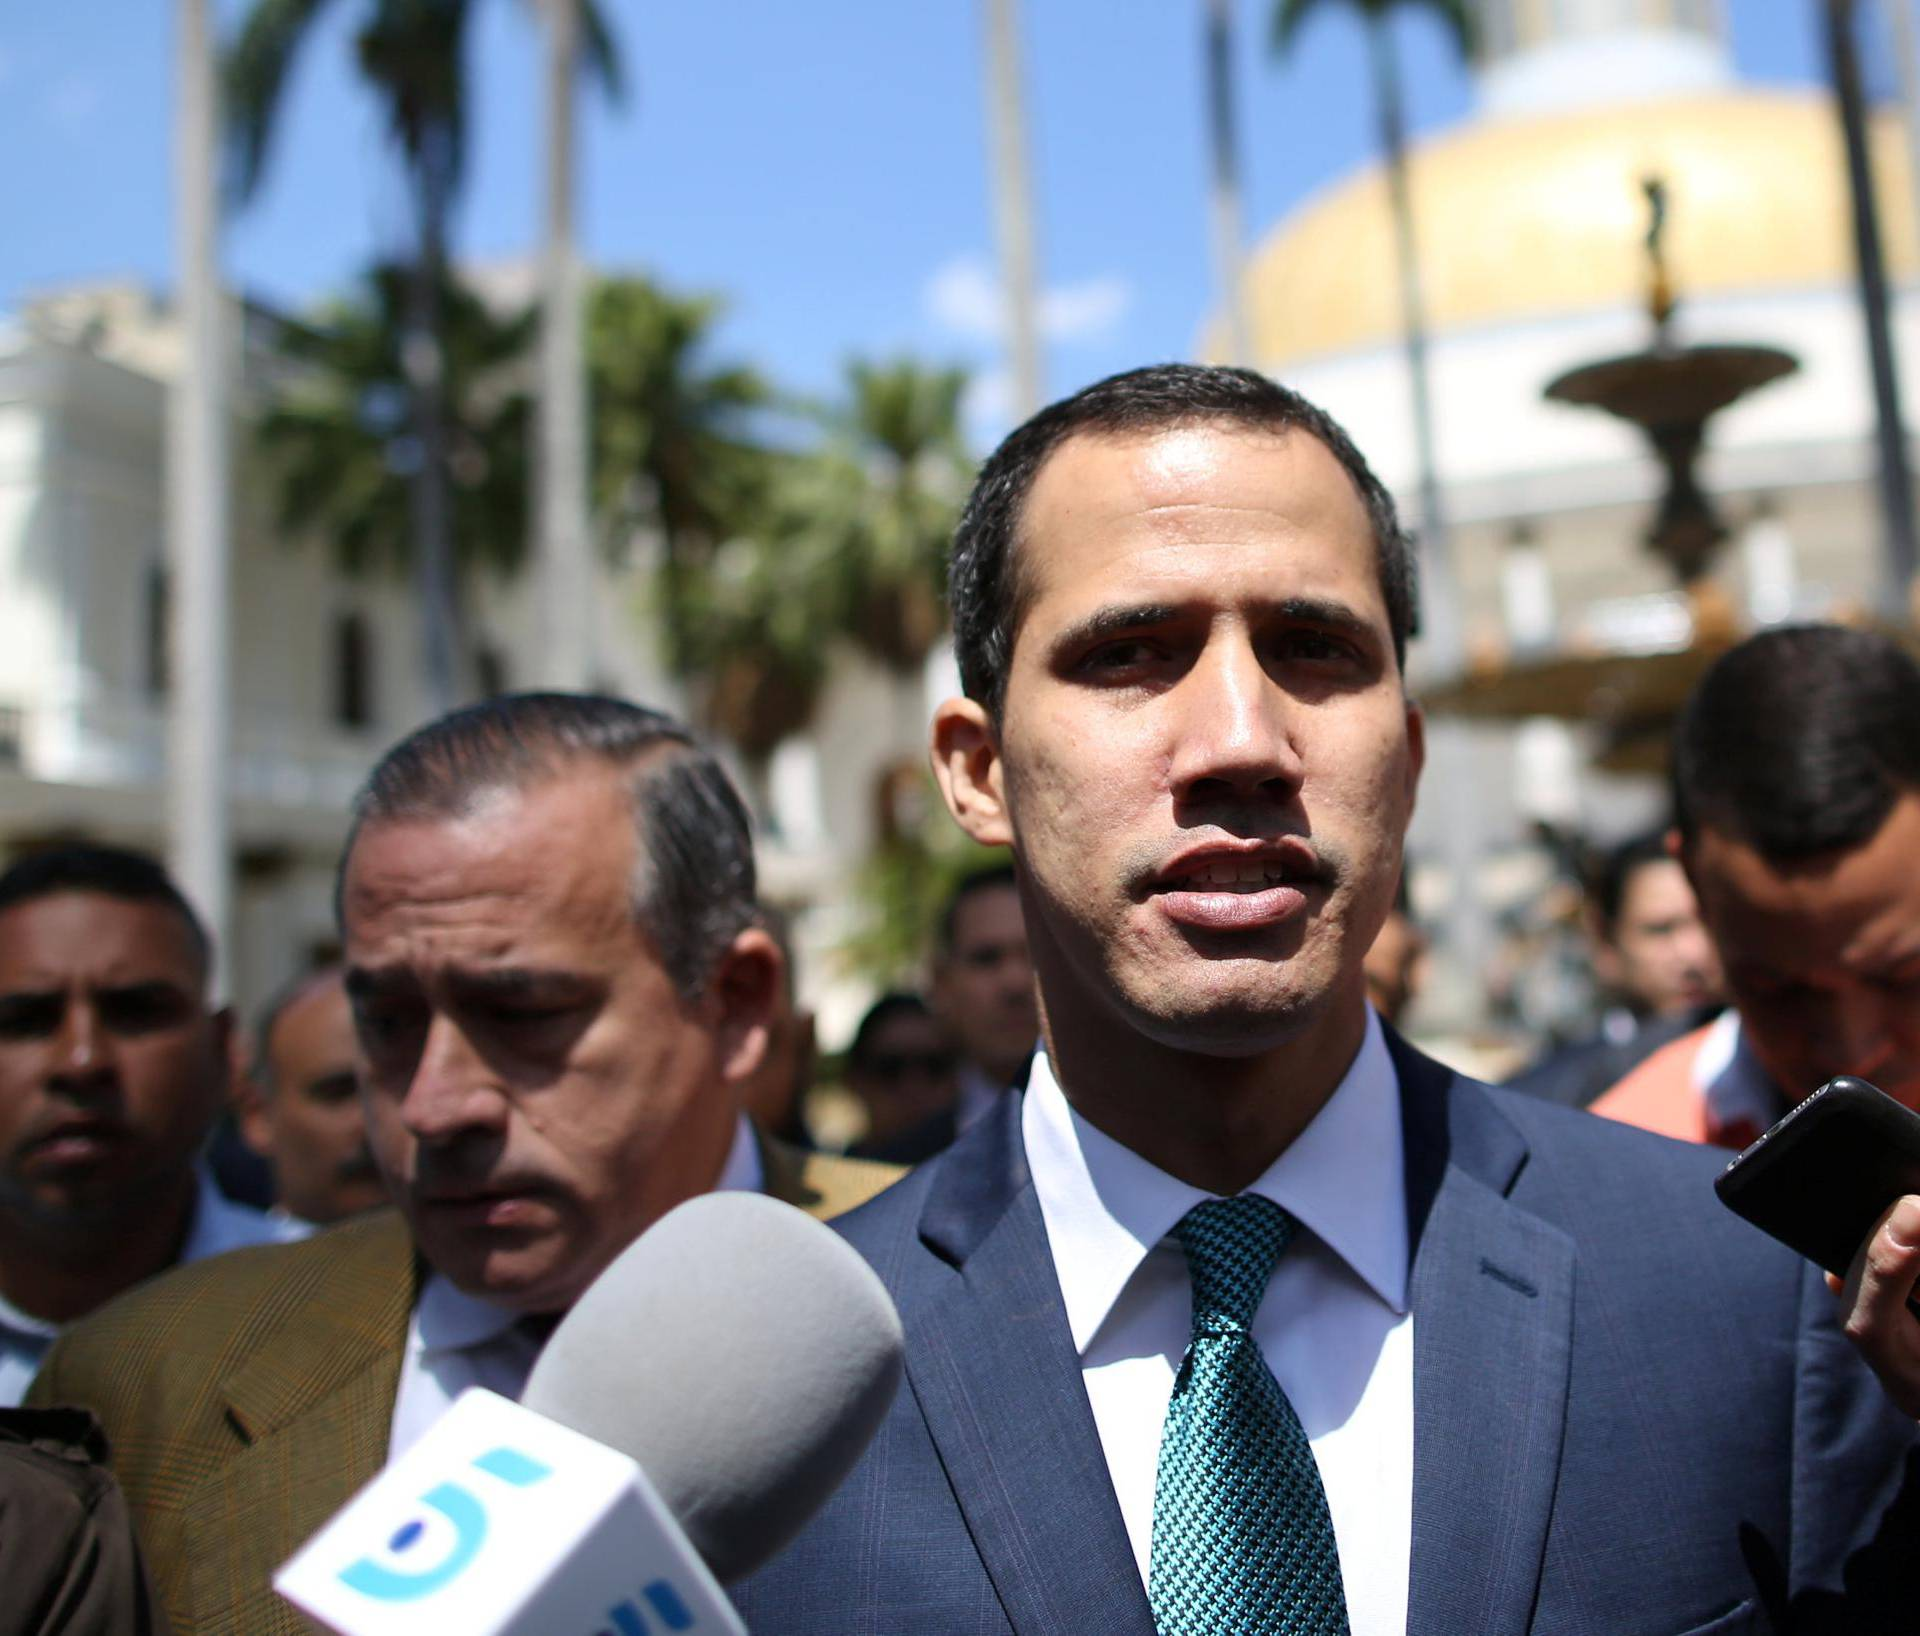 Venezuelan opposition leader Juan Guaido walks as he speaks to journalists before a news conference at the National Assembly in Caracas